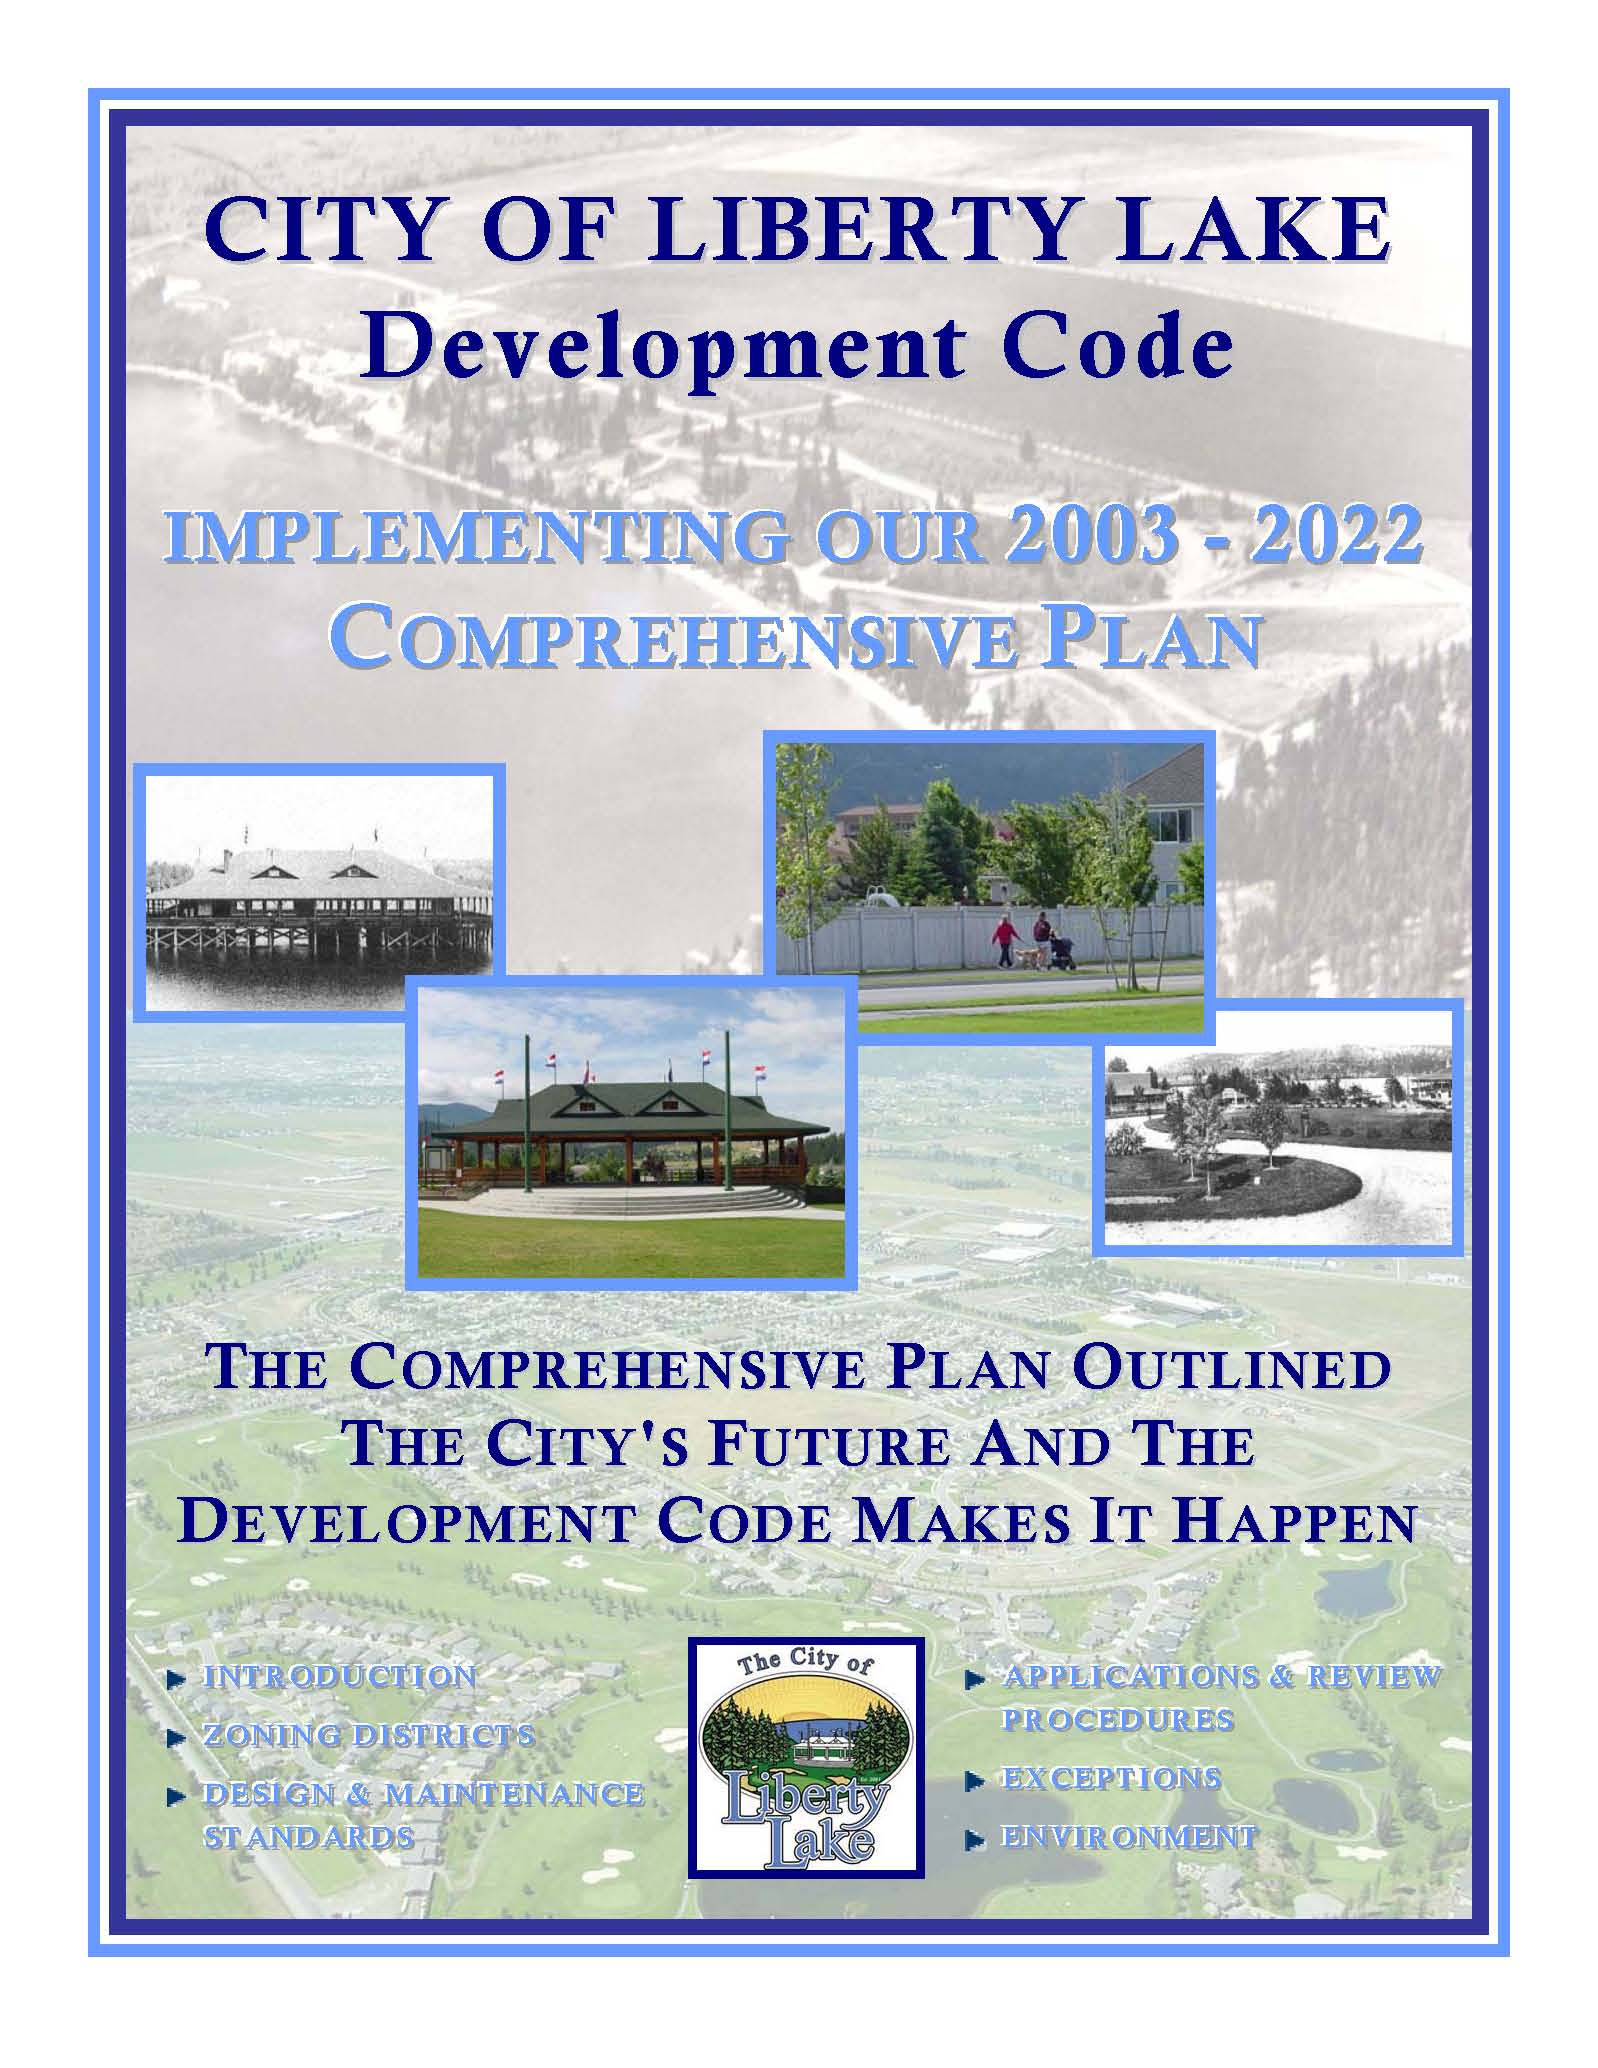 City Development Code - Implementing the 2003 - 2022 City Comprehensive Plan